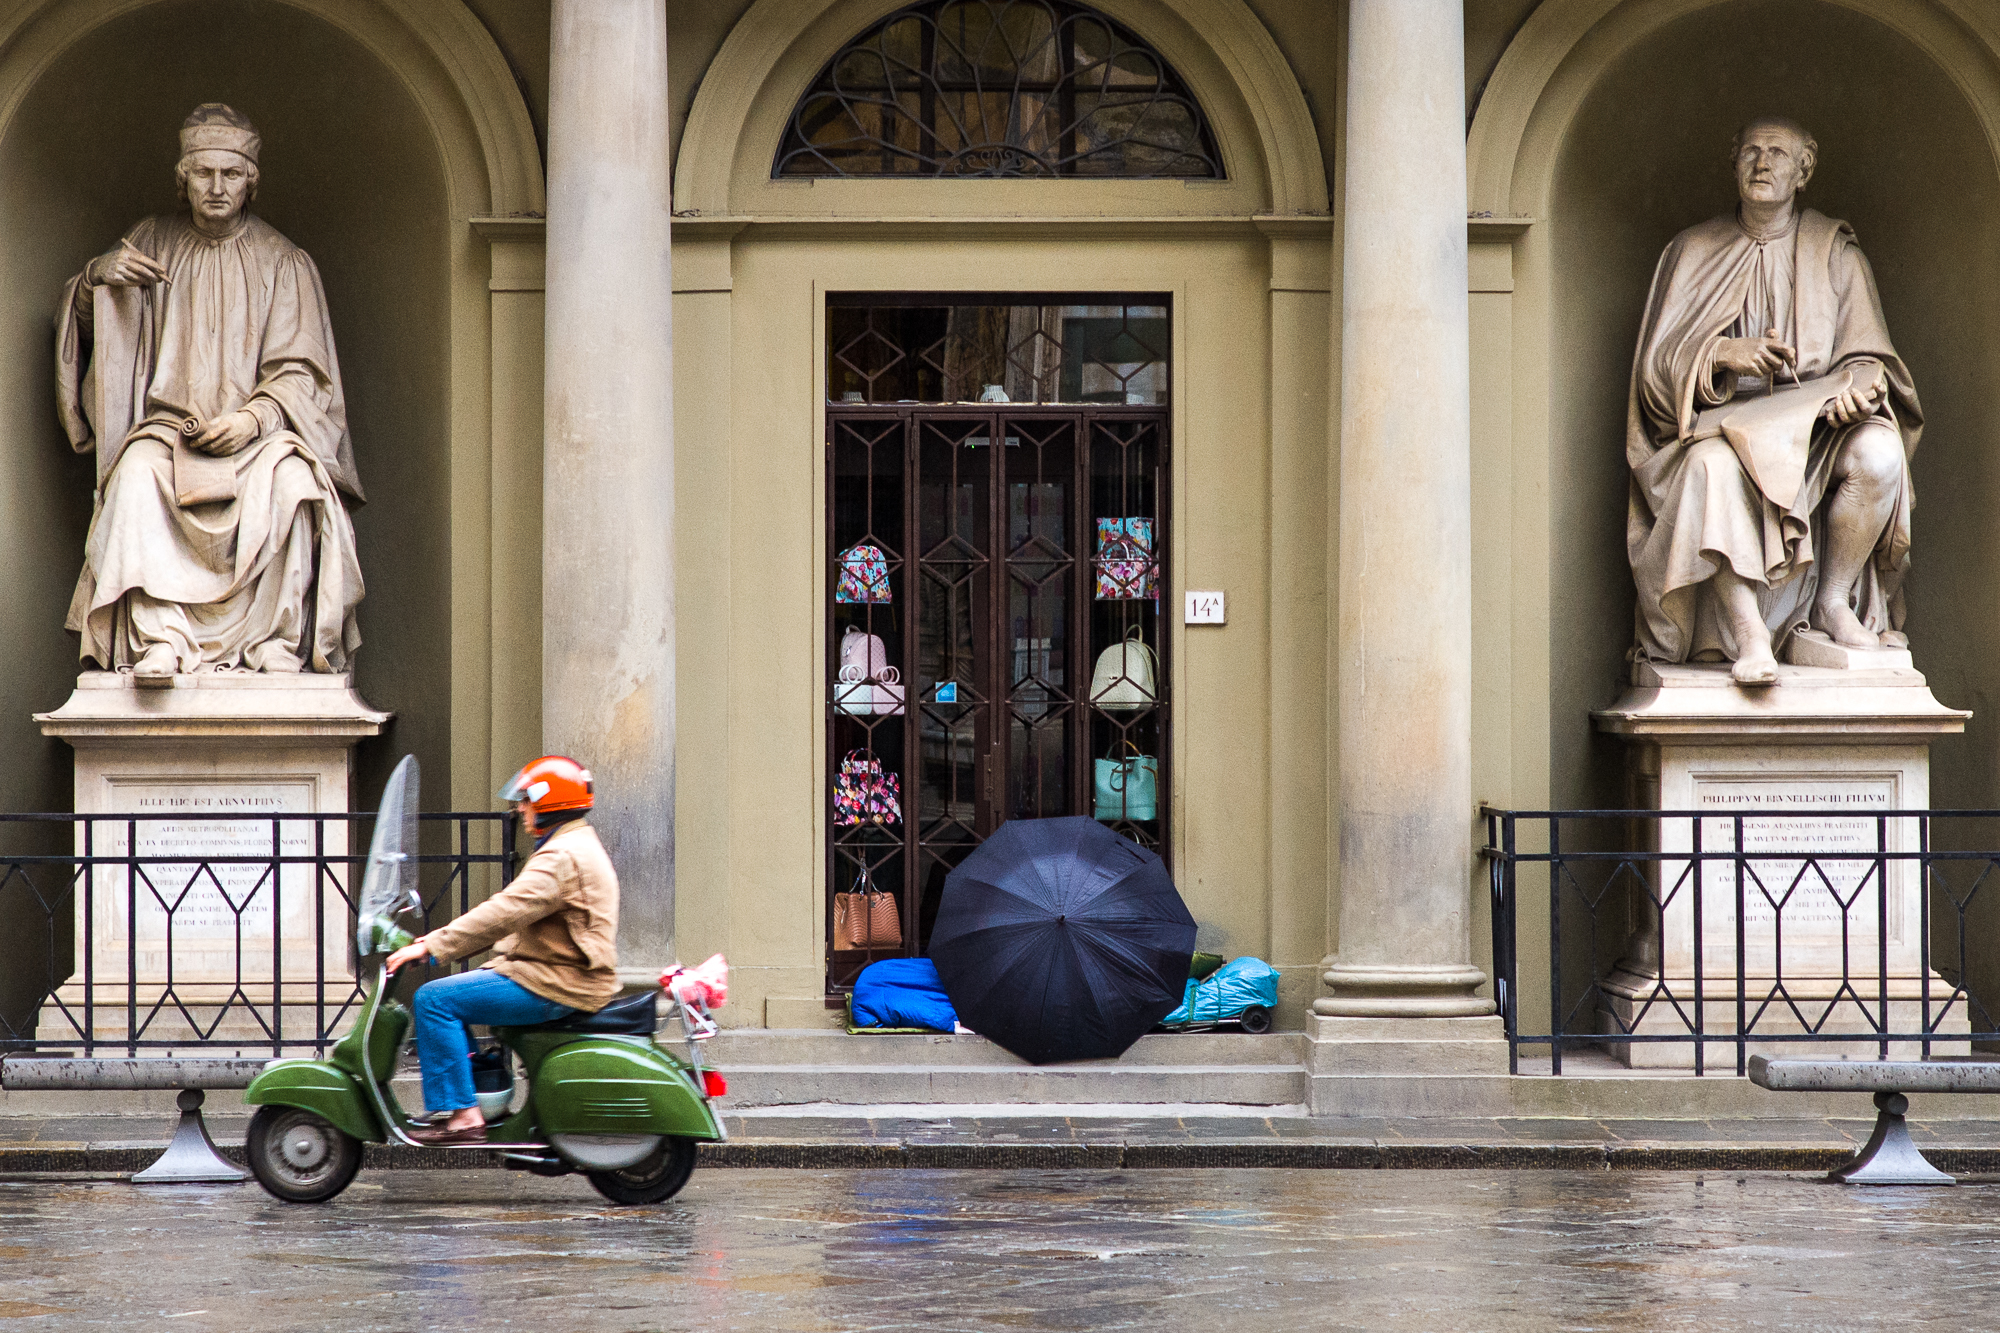 Vespa riding past a homeless man in Florence